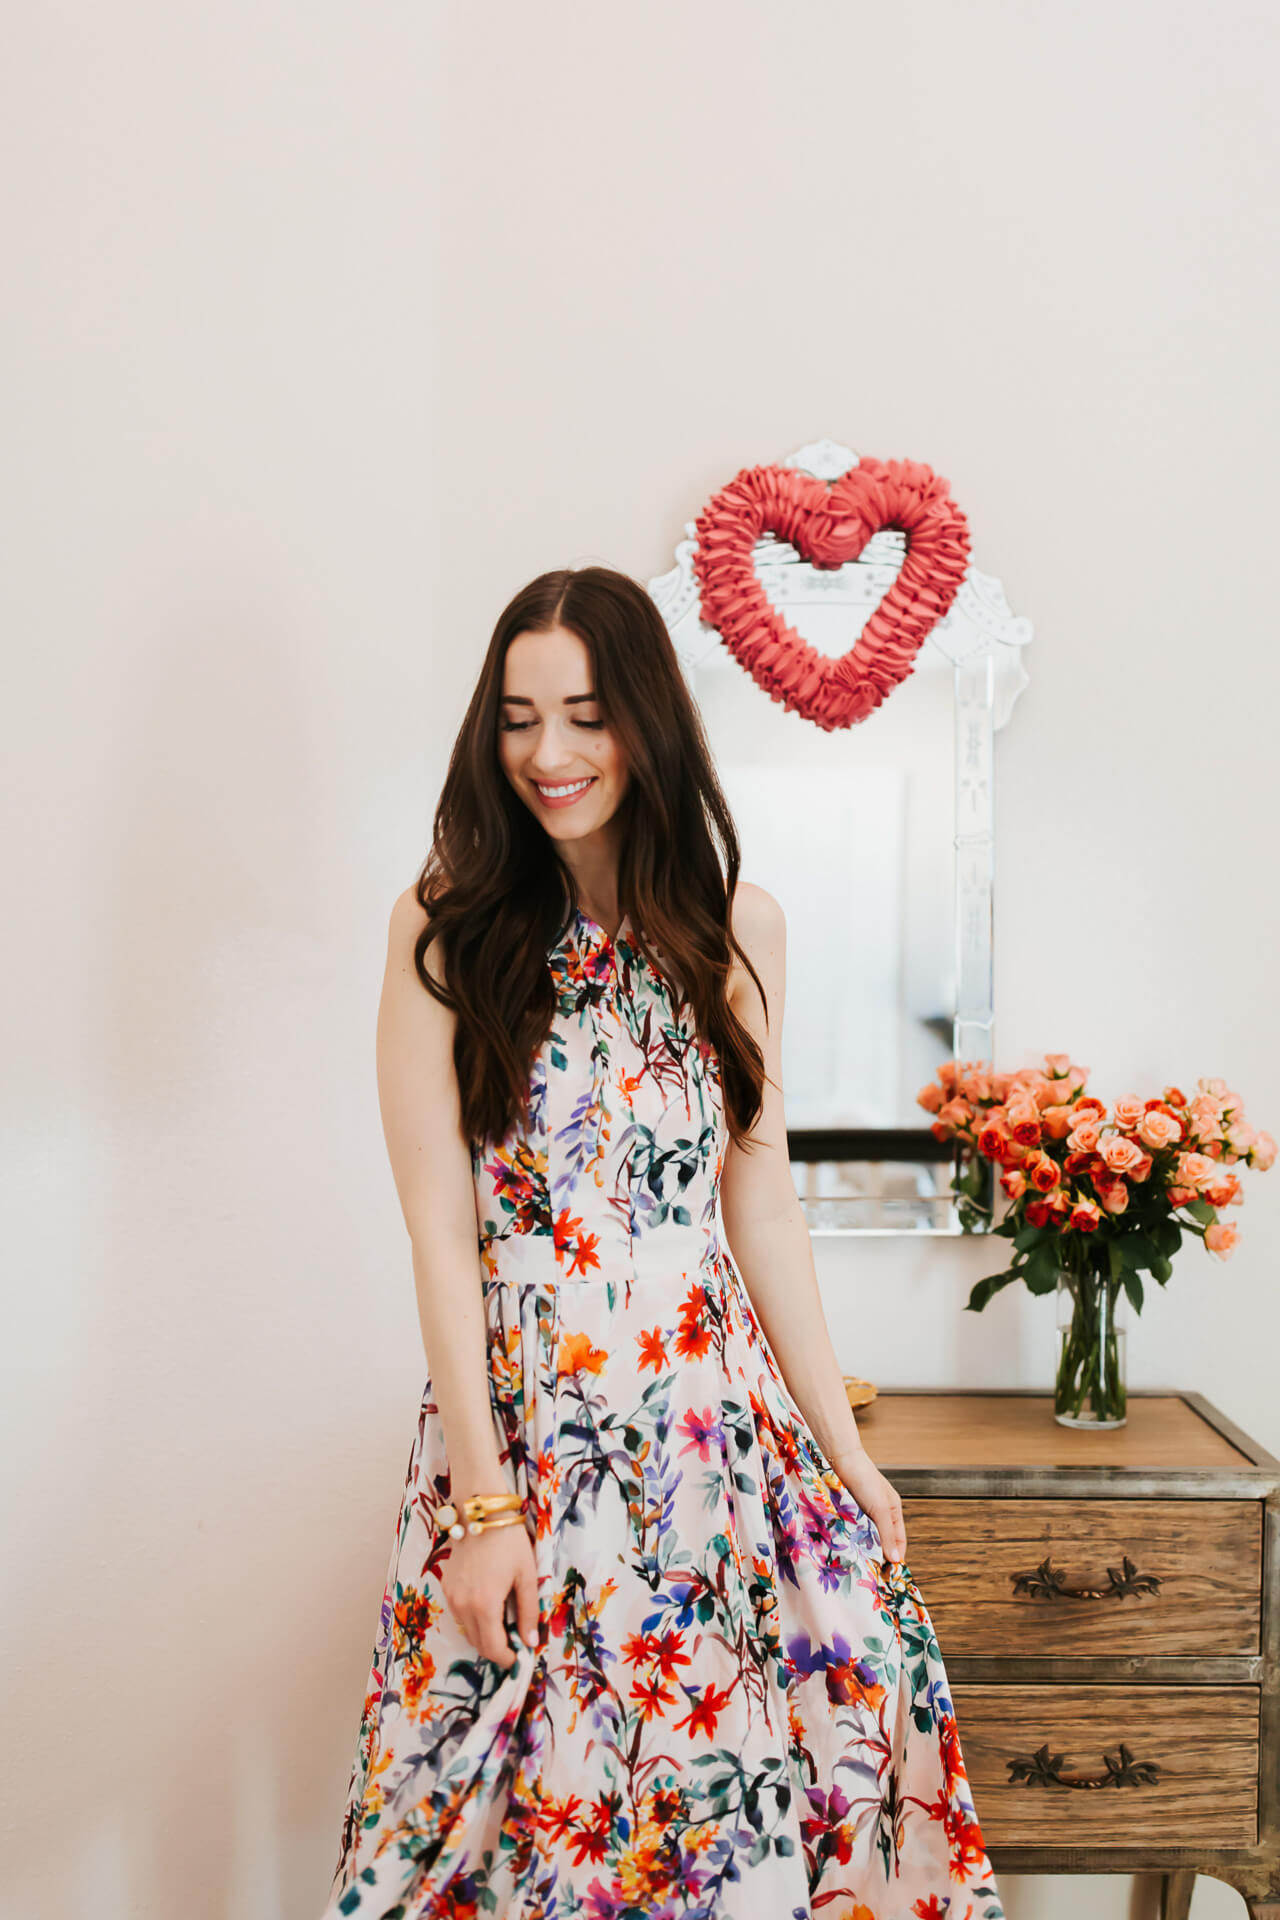 the prettiest Valentine's Day dress - M Loves M @marmar